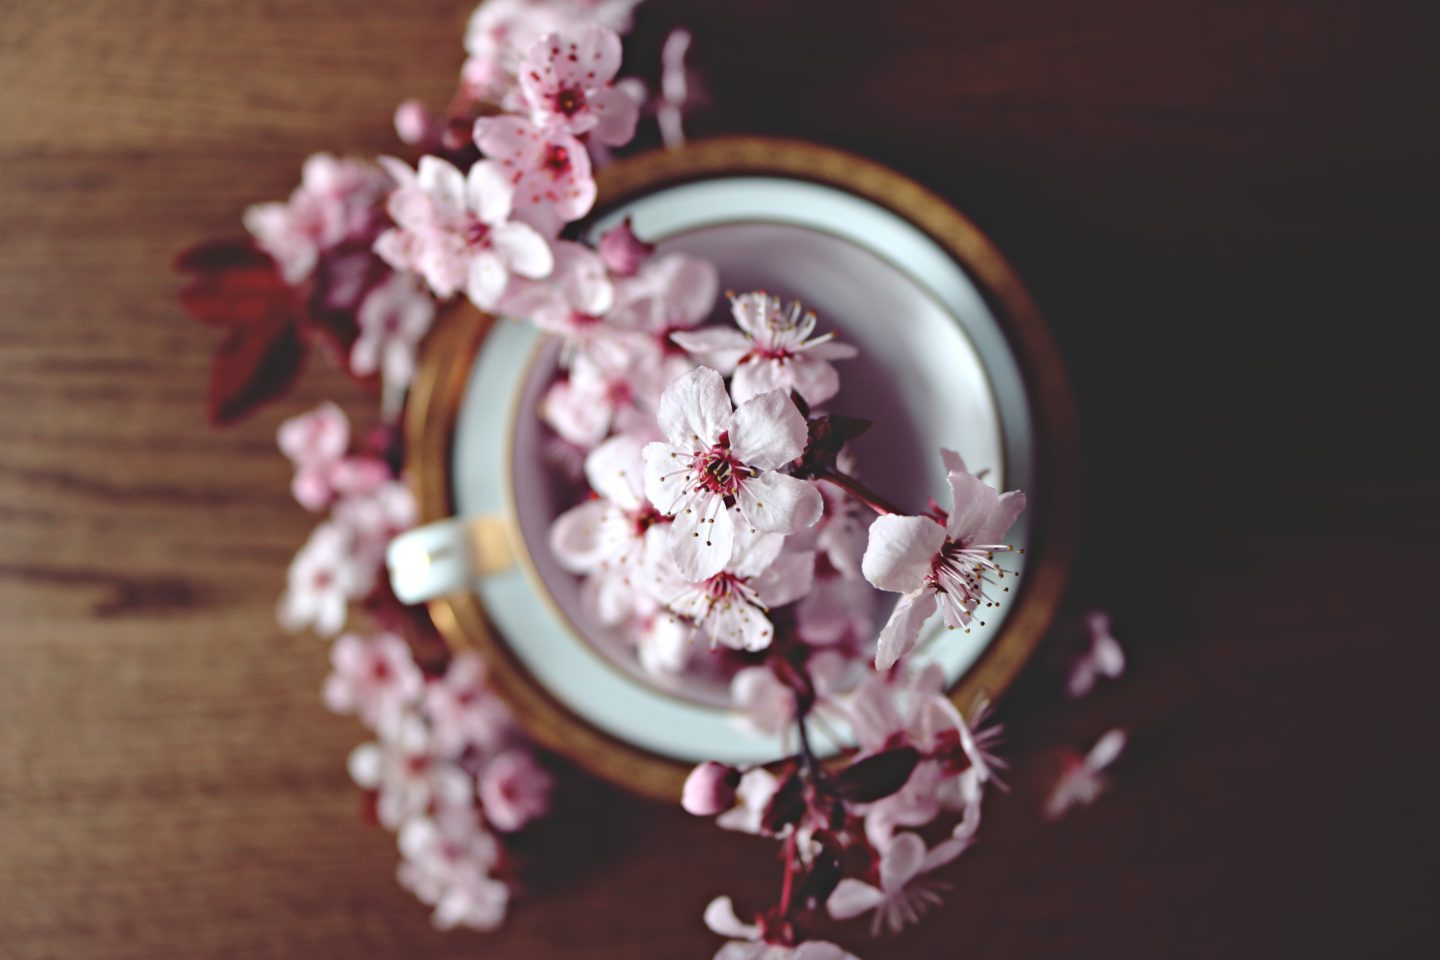 Cherry blossom table decoration